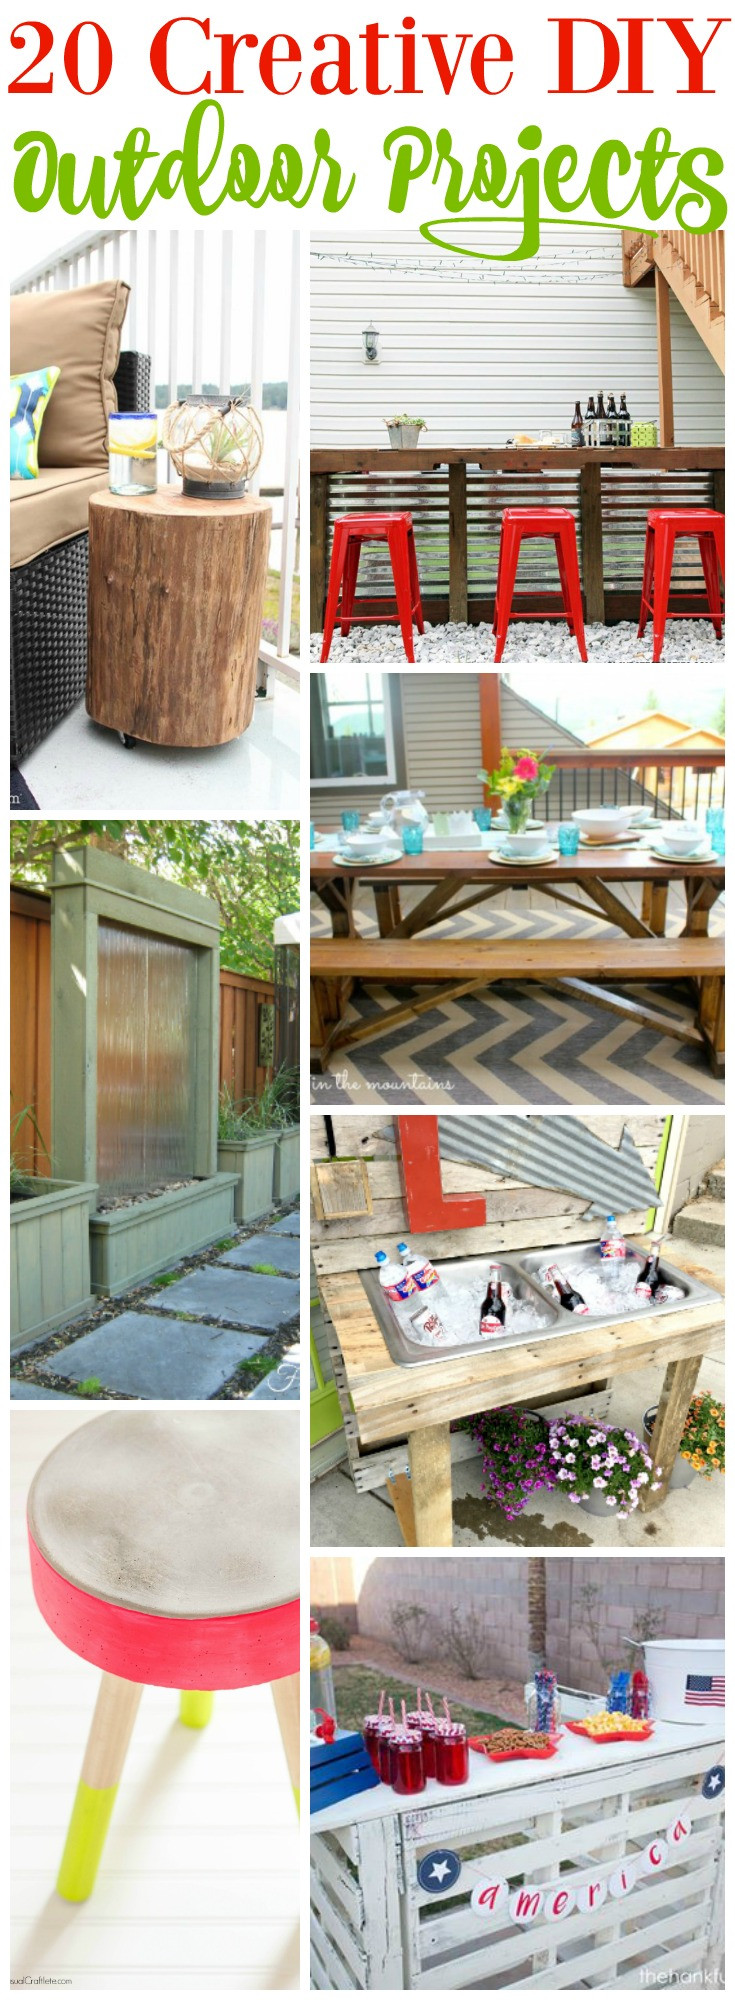 DIY Projects Outdoor  20 Creative Outdoor DIY Projects